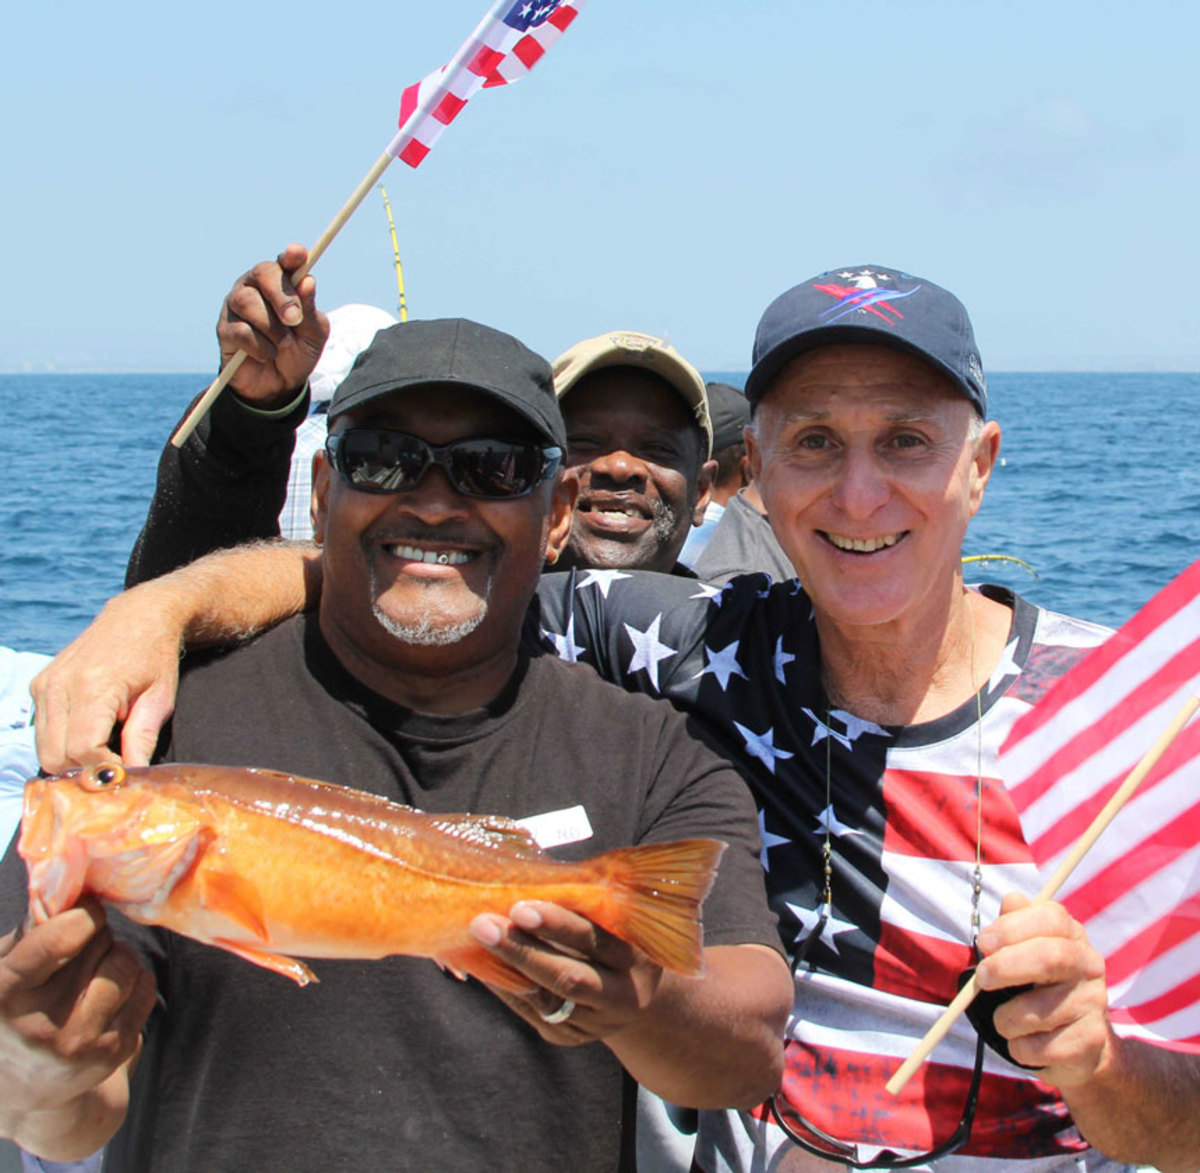 Volunteer Larry Brown celebrates a successful catch with veterans aboard the sportfishing boat Betty O. Doctors and recreational therapists say a fishing program for veterans is among the most popular recreational opportunities for them in Southern California.